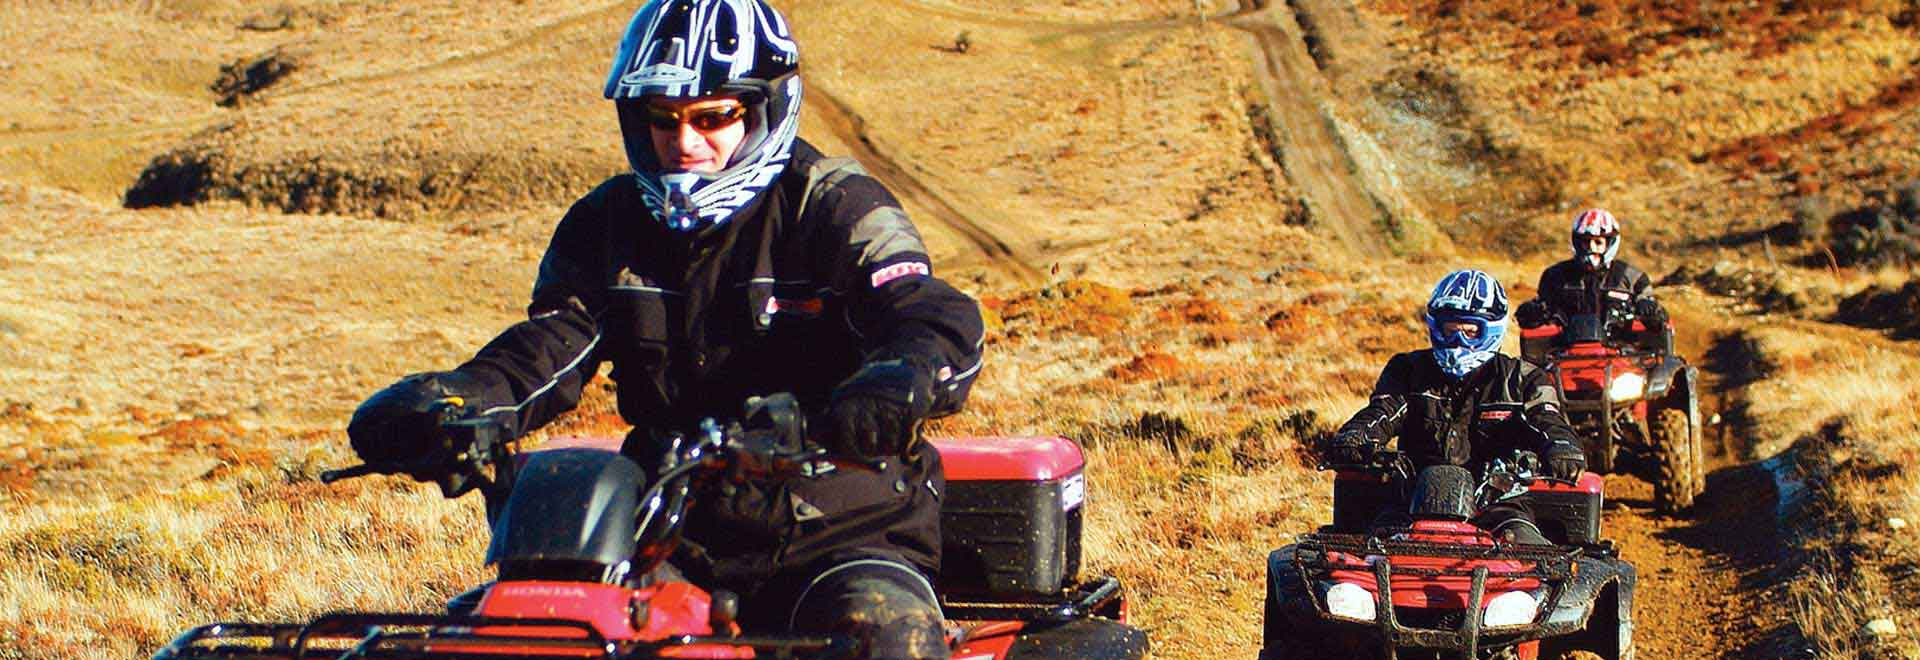 Quad Safari Nomad Queenstown (Max 6 per vehicle)